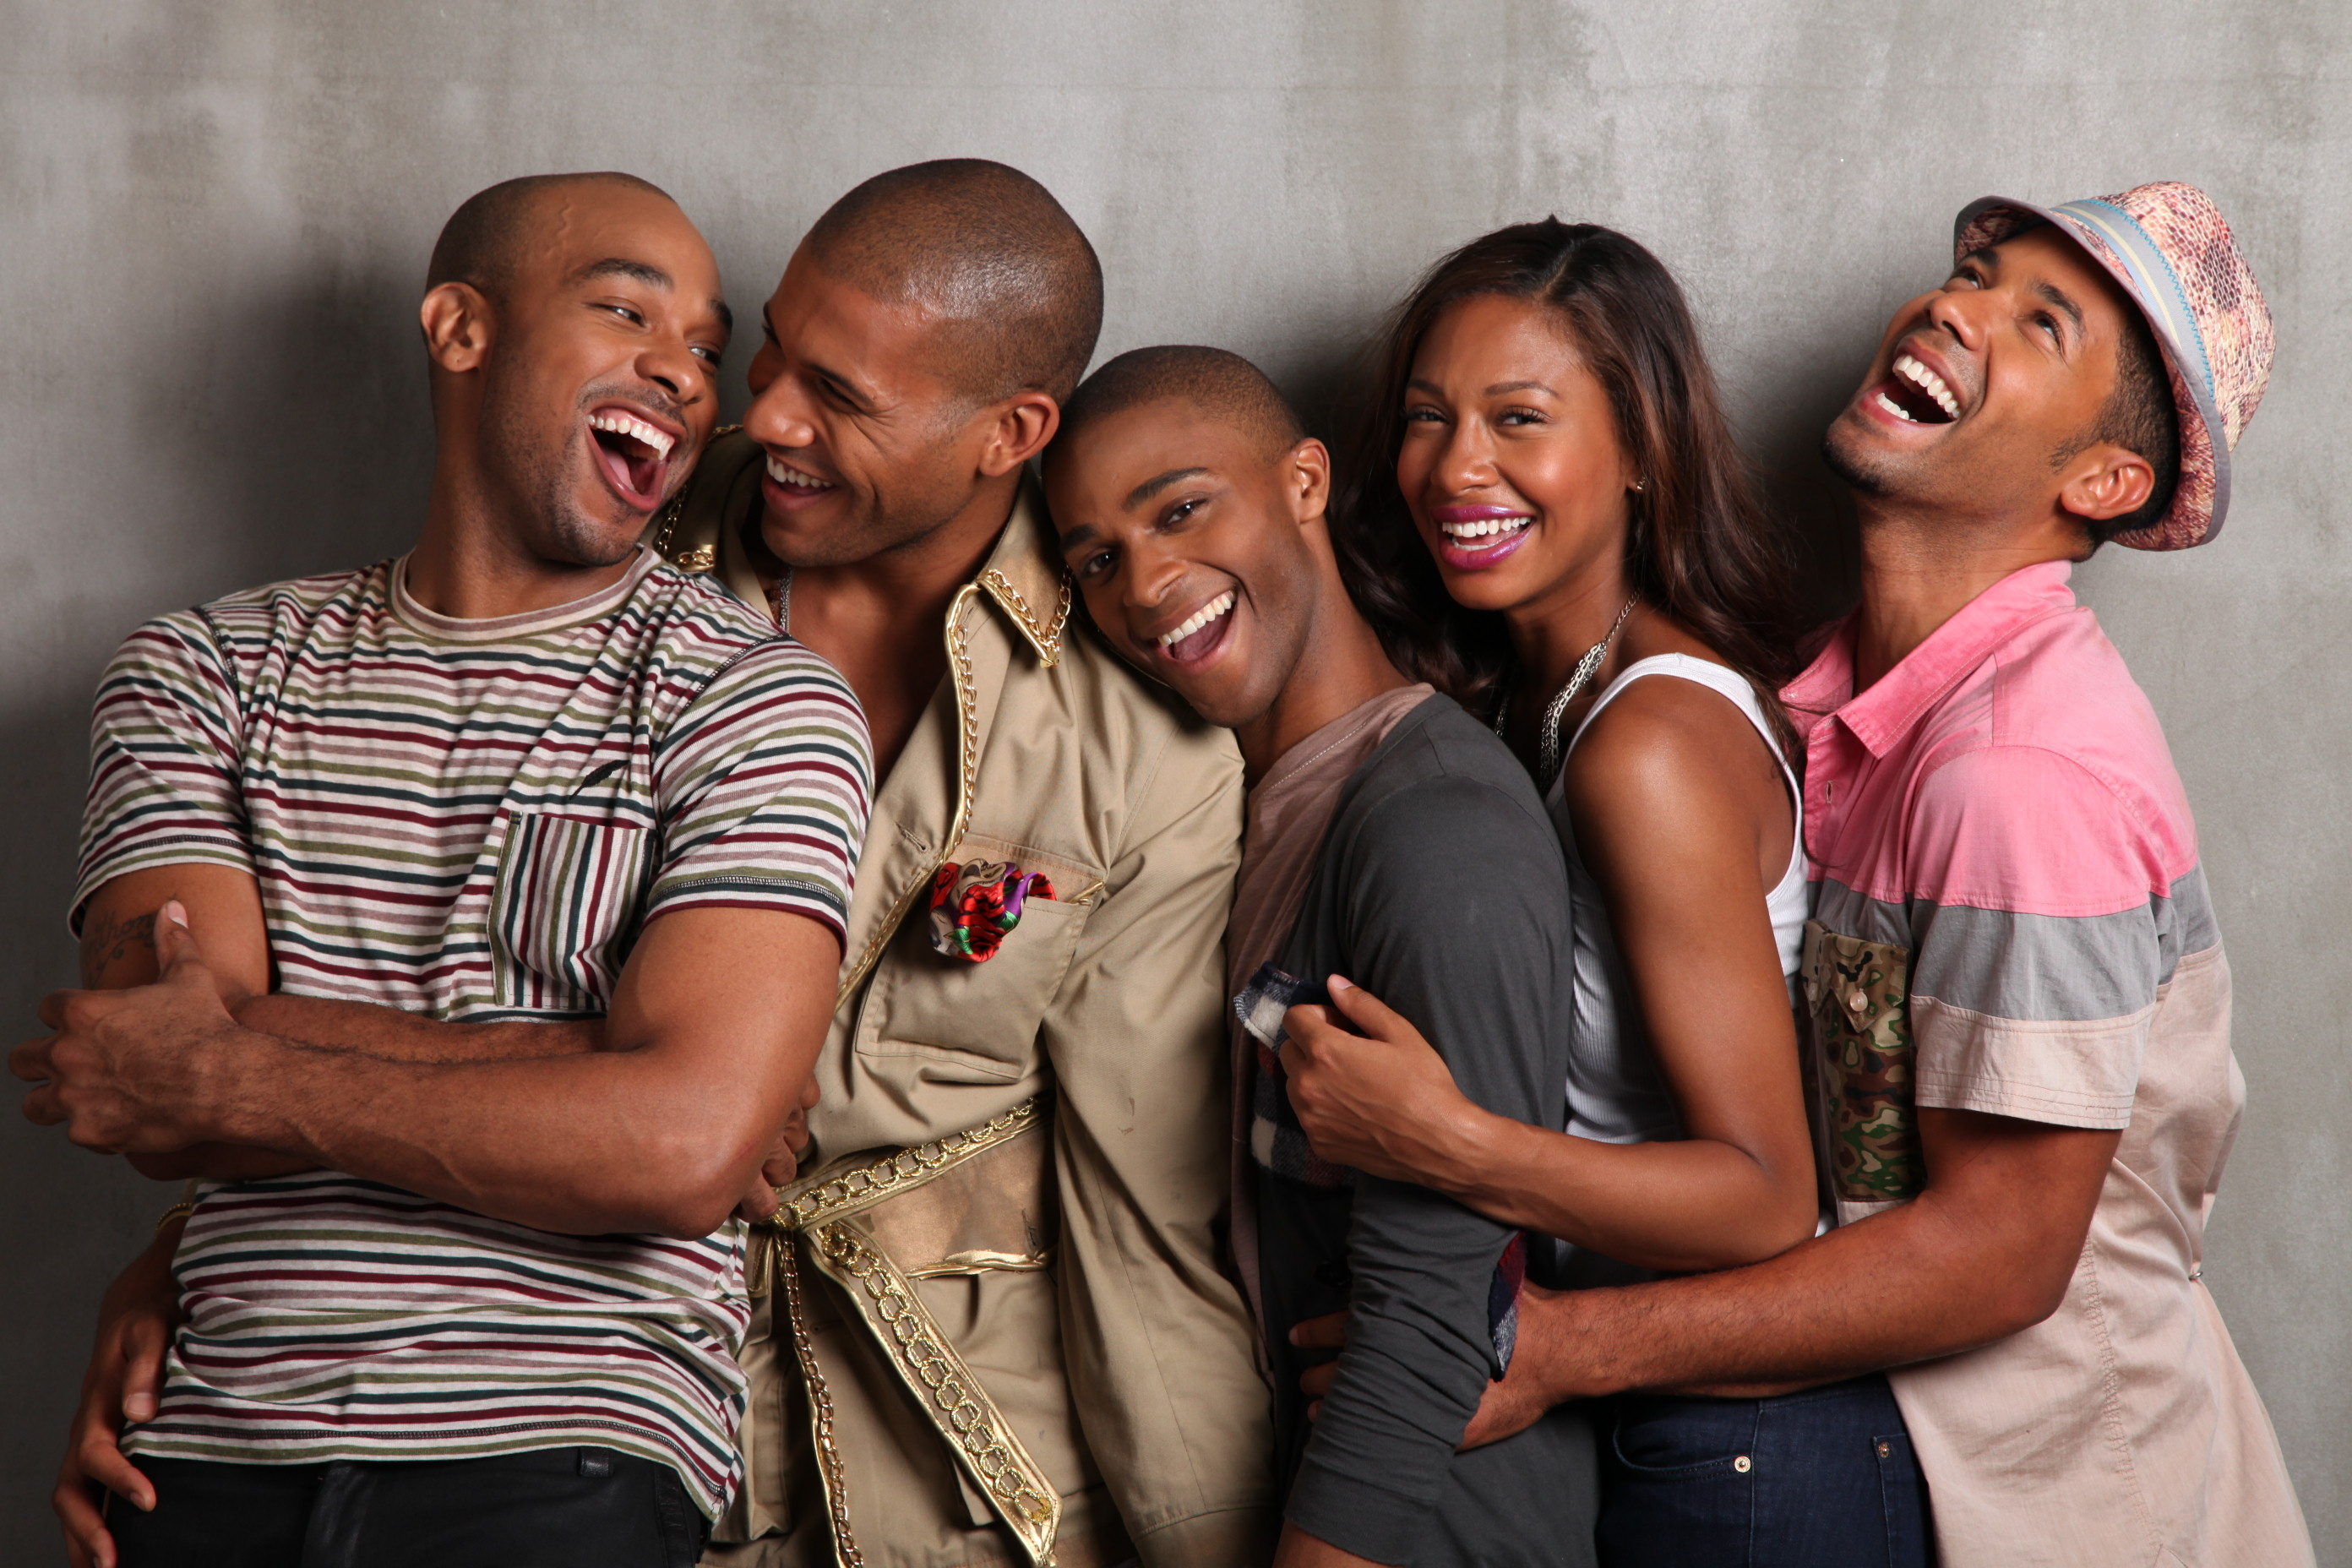 valatie black dating site Black singles know blackpeoplemeetcom is the premier online destination for african american dating to meet black men or black women in your area, sign up today free.